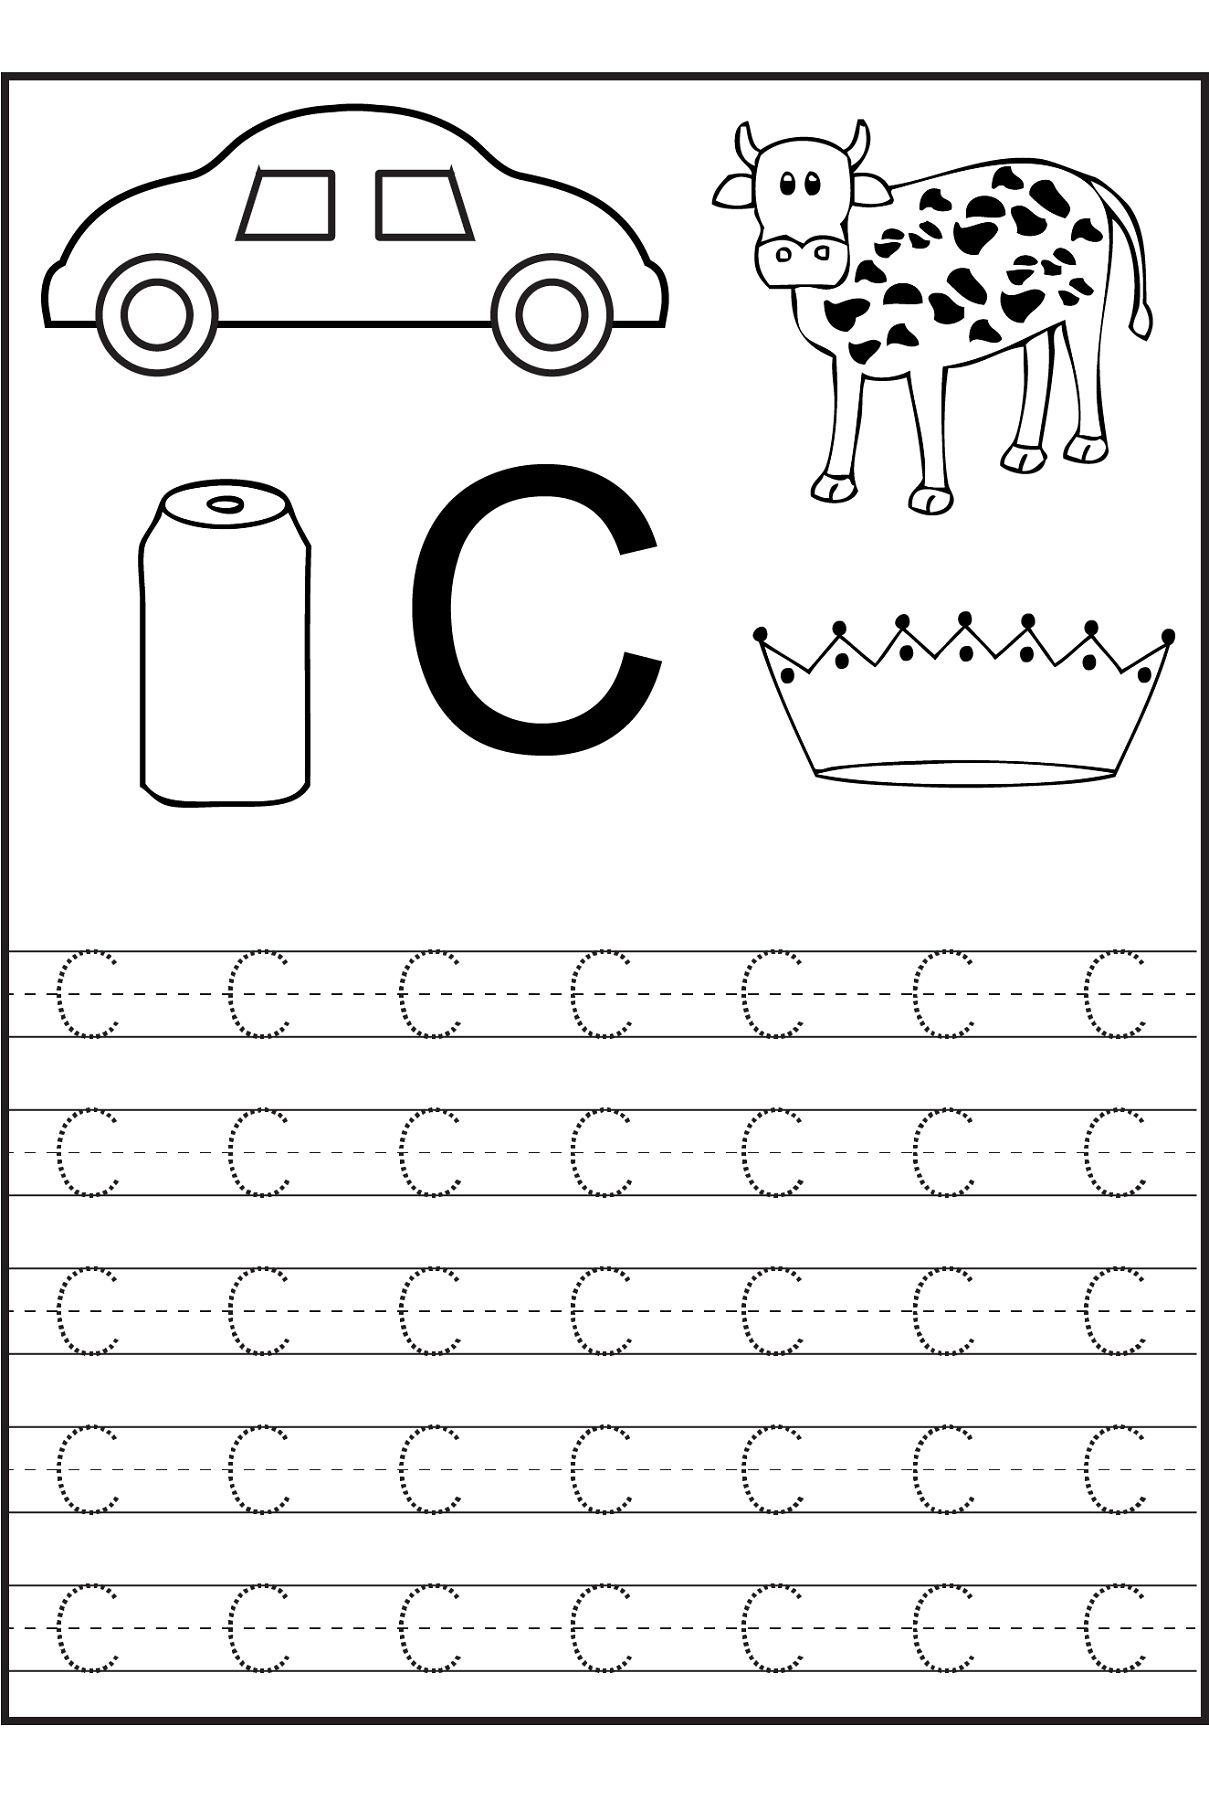 Worksheets Free Preschool Worksheets Alphabet Tracing letter c worksheets for preschool and kindergarten